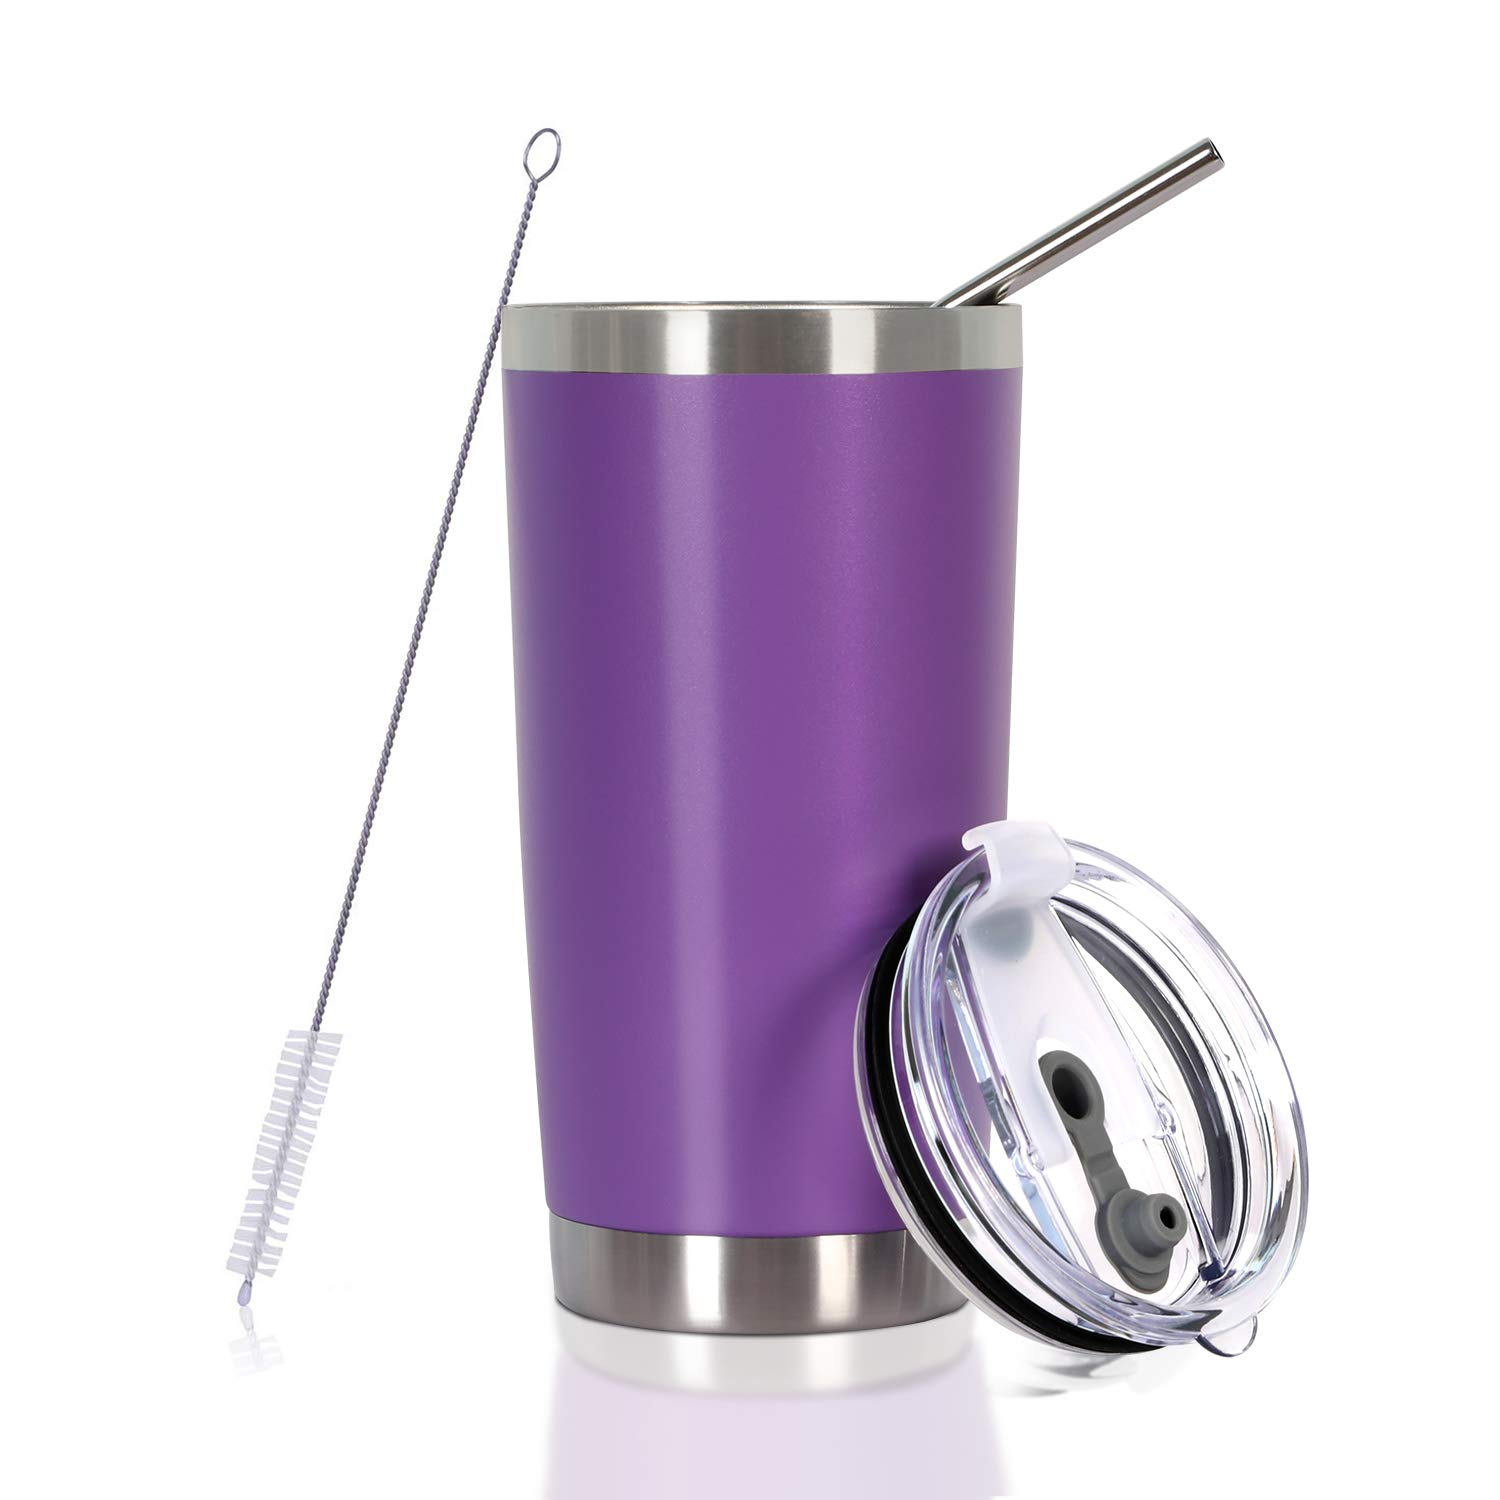 20 oz. Tumbler Double Wall Stainless Steel Vacuum Insulation Travel Mug with Crystal Clear Lid and Straw, Water Coffee Cup for Home,Office,School, Ice Drink, Hot Beverage,Purple